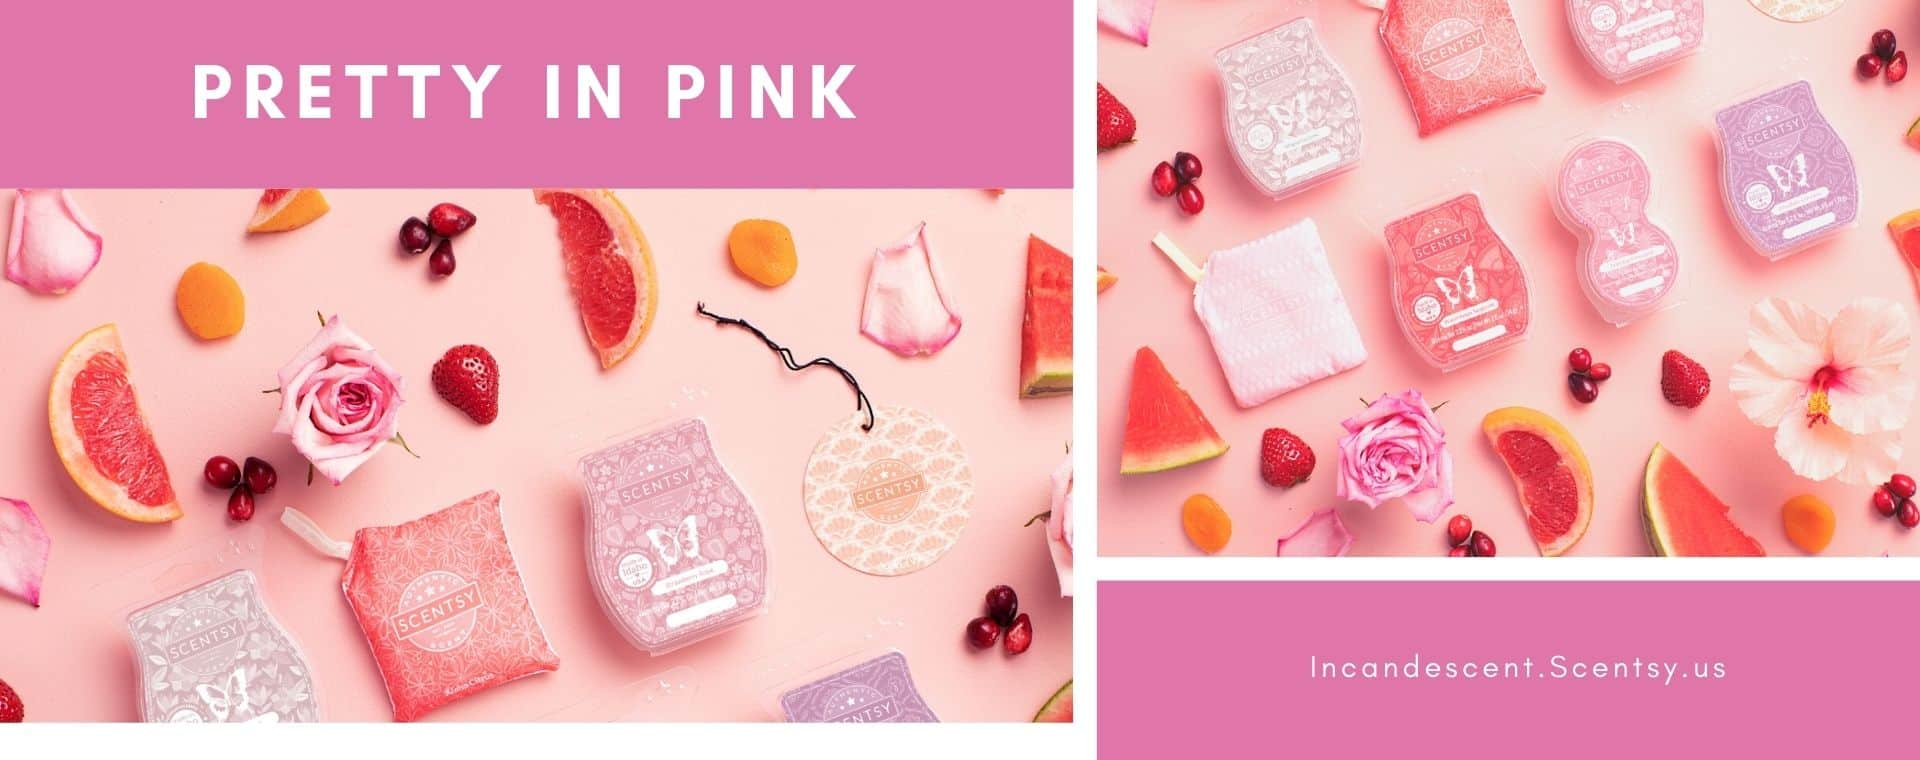 SHOP PRETTY IN PINK SCENTSY PRODUCTS